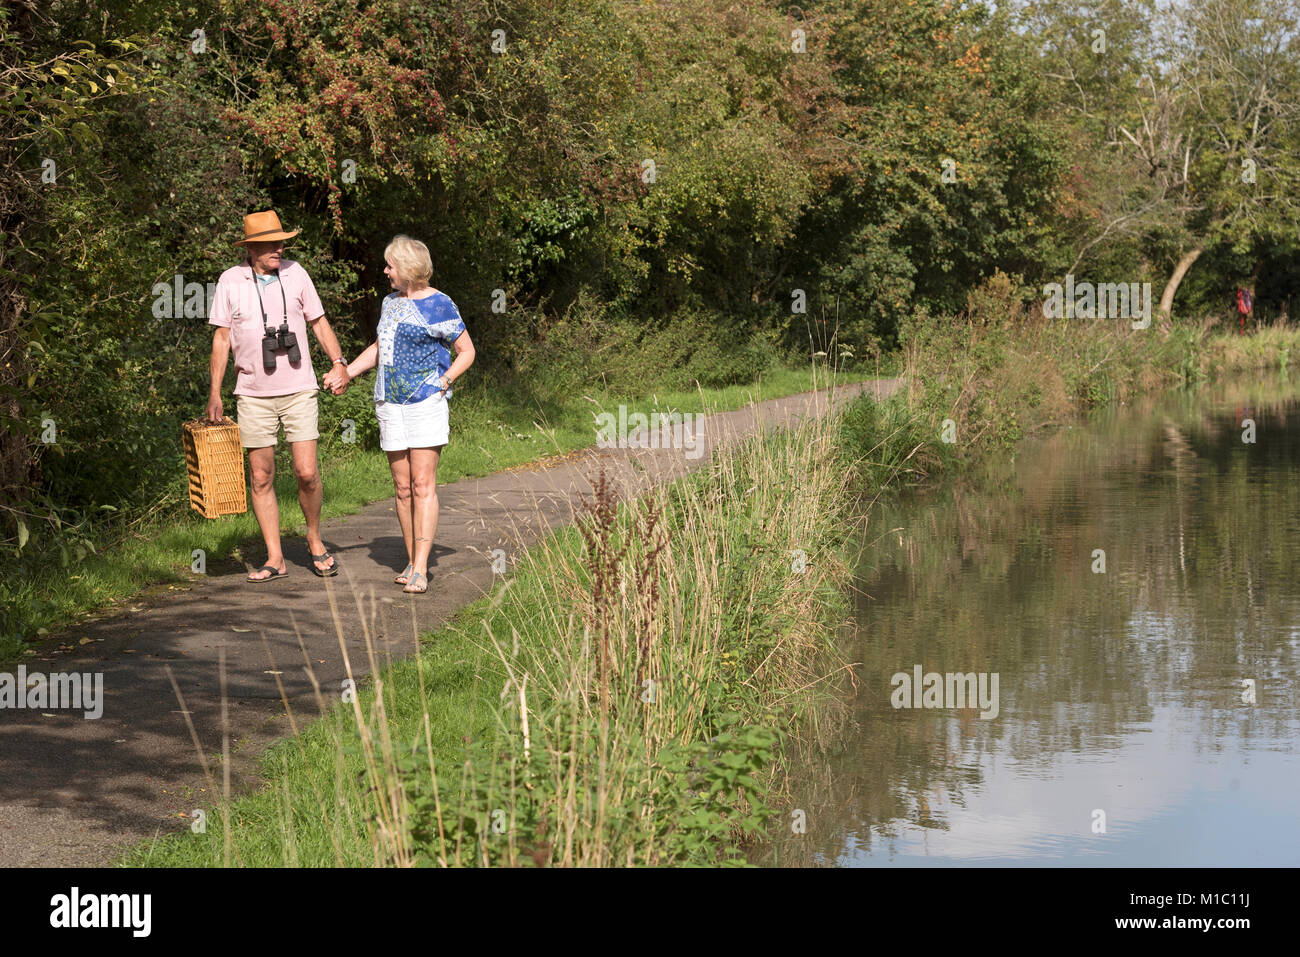 Couple carrying a picnic basket walking along a towpath next to the river - Stock Image